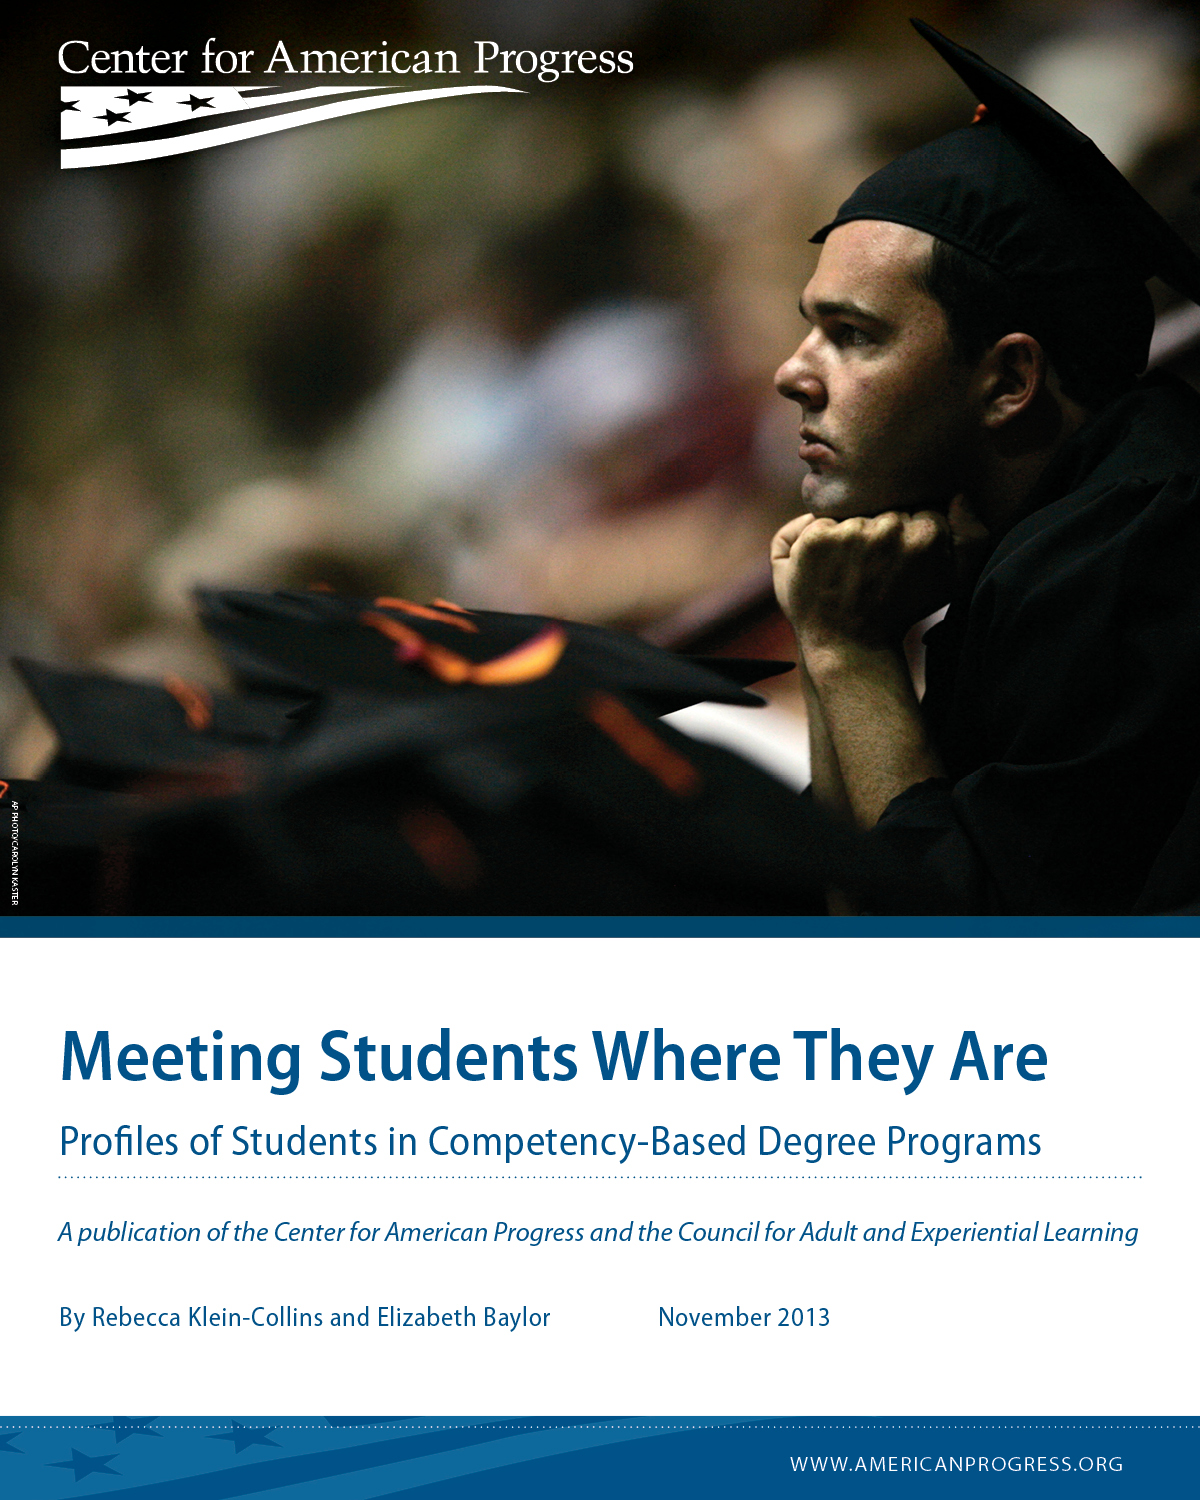 Meeting Students Where They Are